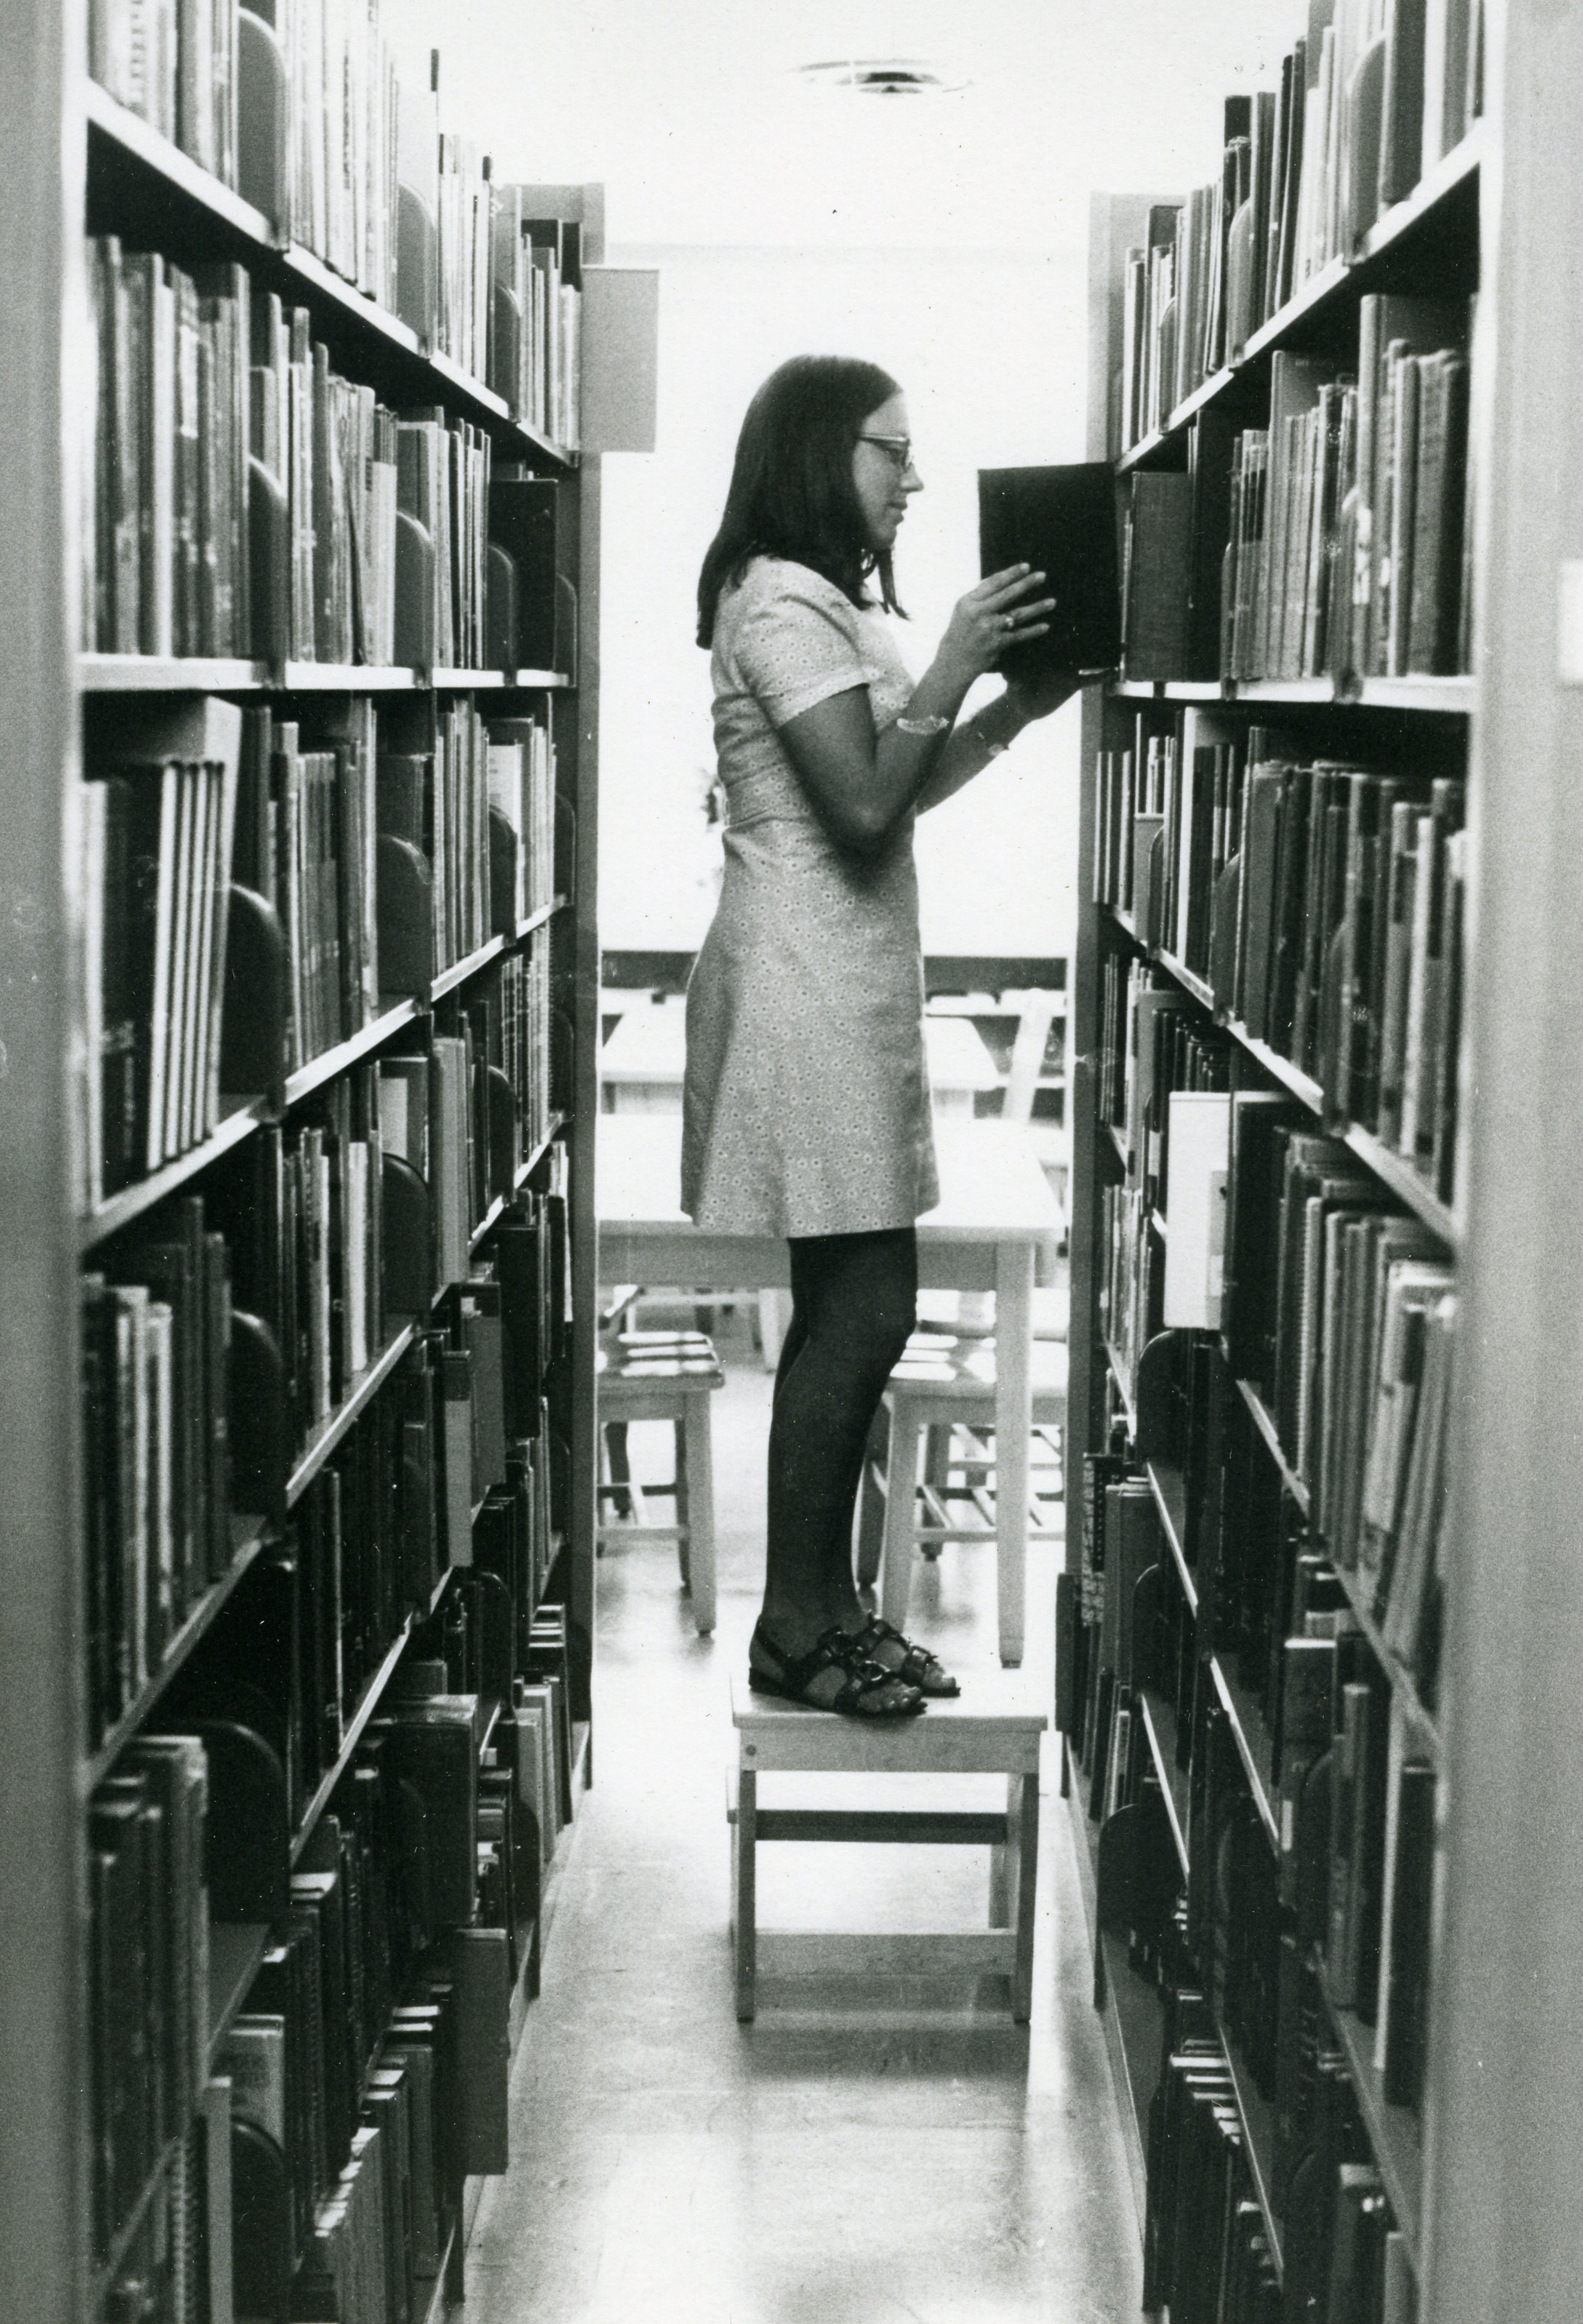 Student re-shelving books, undated